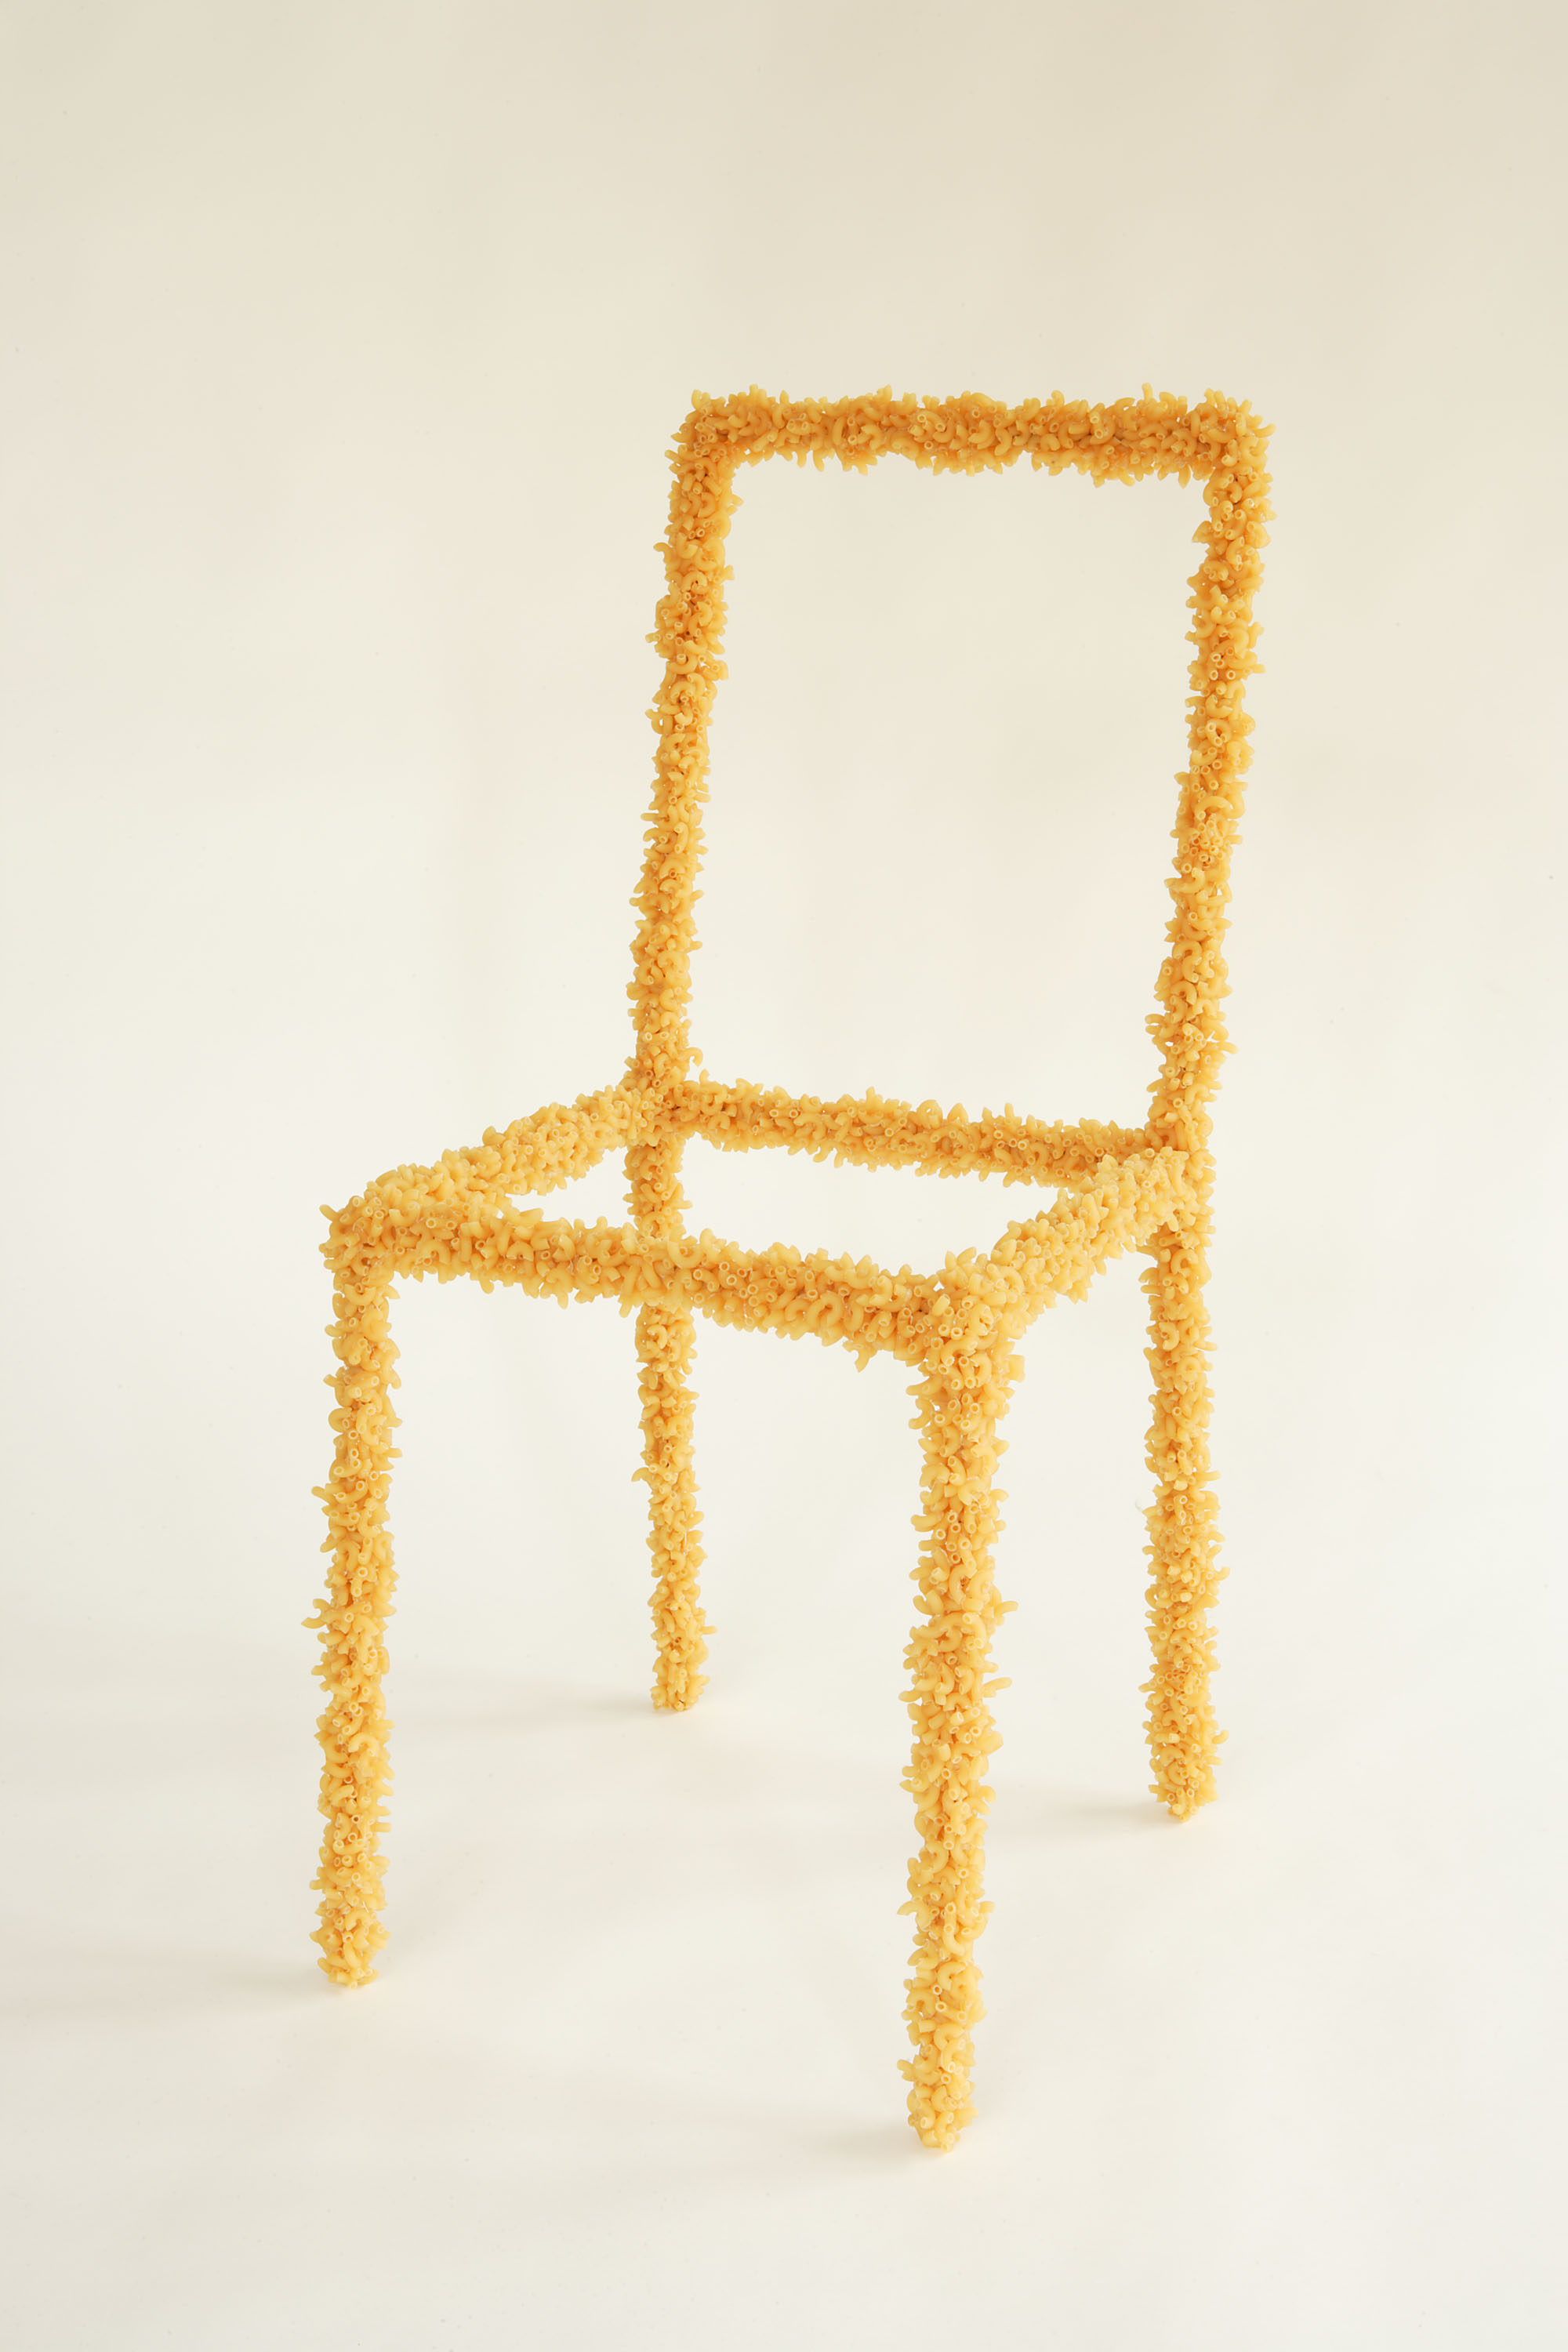 PASTA CHAIR David Byrne